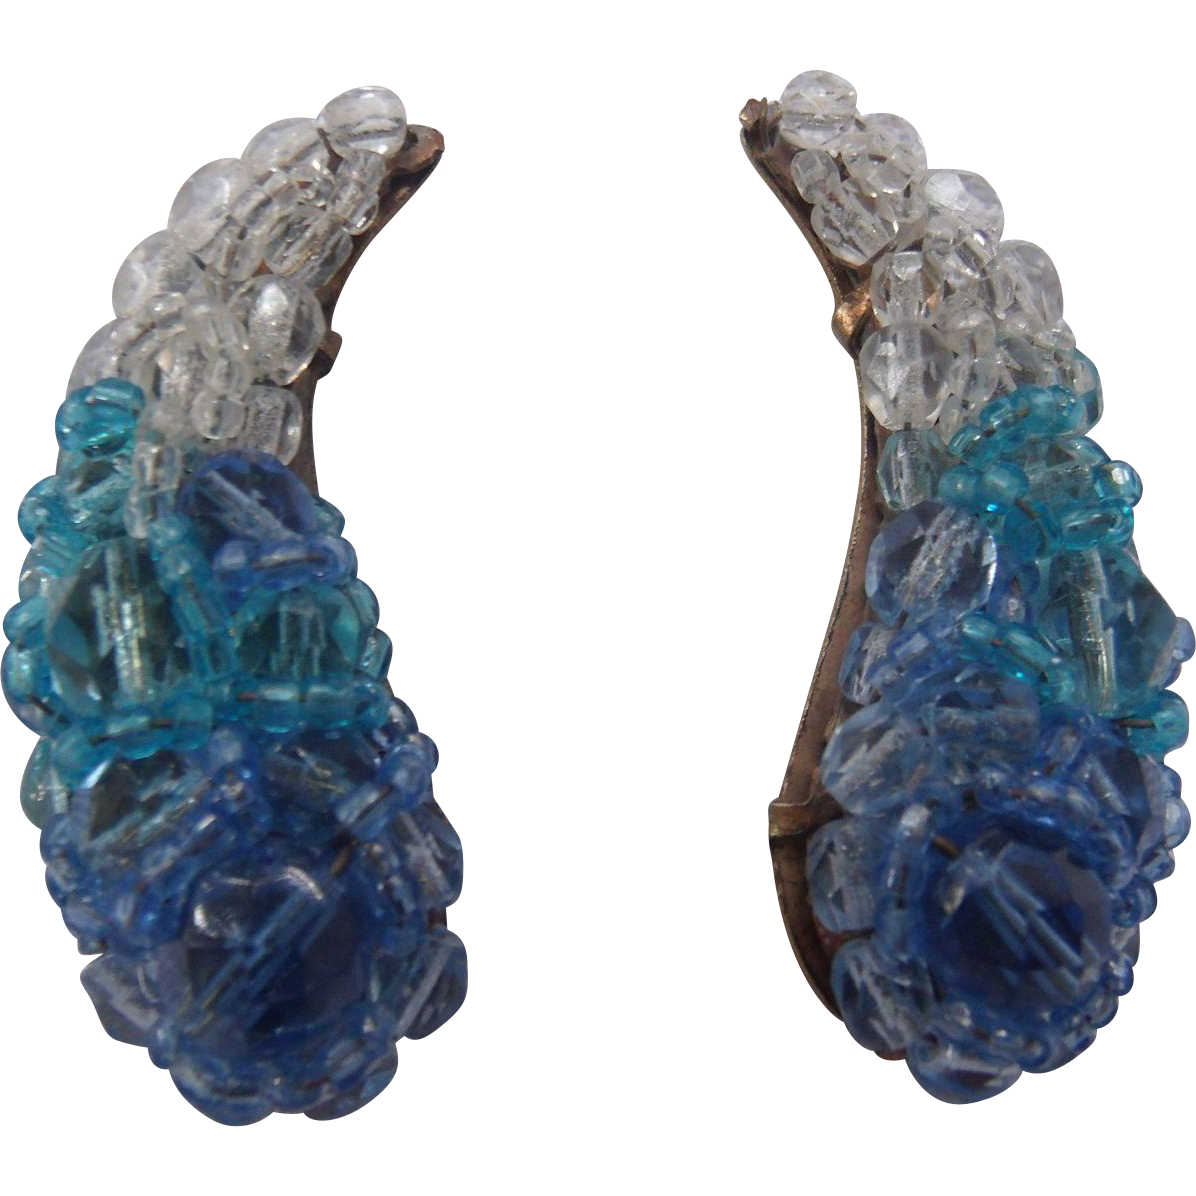 Coppola E Toppo Vintage Crystal Earrings